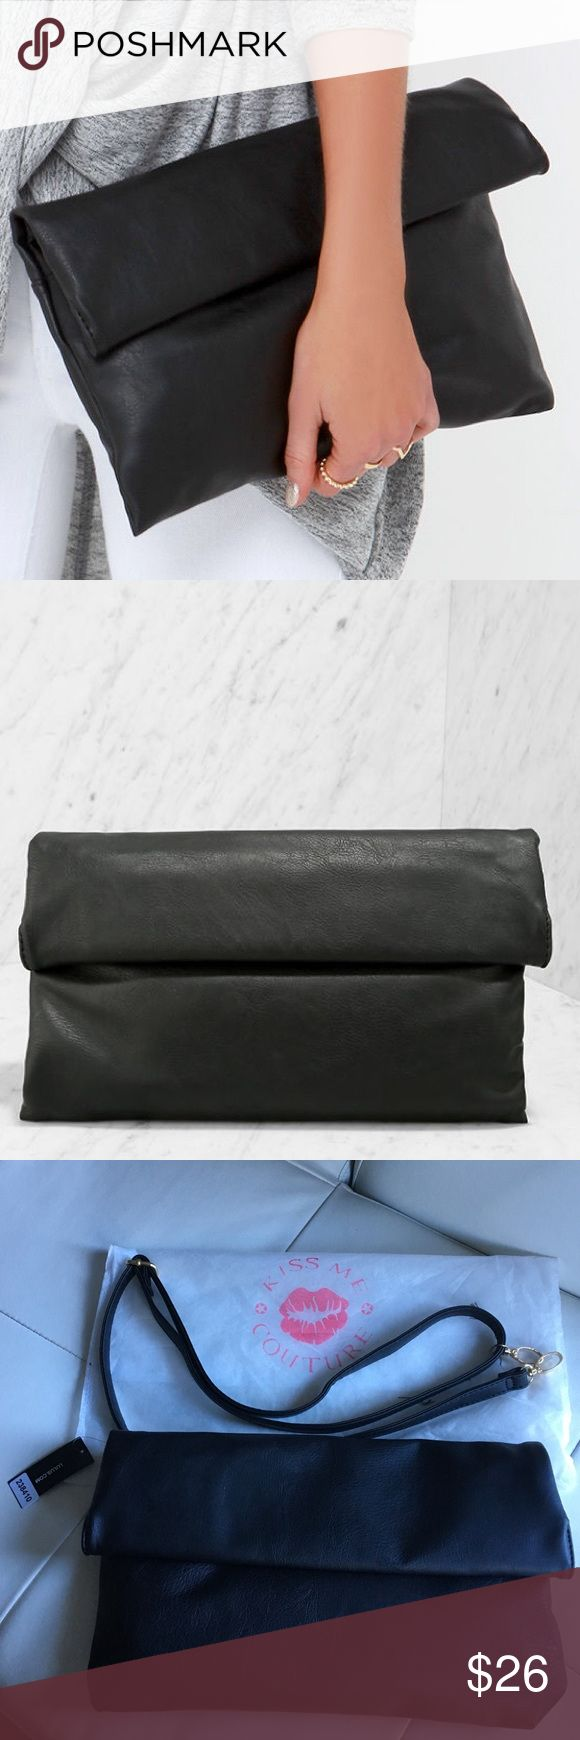 """Lulu's Roller Coast to Coast Black Clutch Purse Soft and lightly crackled vegan leather forms a chic rectangular clutch that rolls up and secures with hidden magnetic closures. Unroll to find a front flap pocket, and main compartment (with hidden magnet closures) with additional zip pocket. Carry as a clutch, or attach the shoulder strap measuring 53"""" at longest adjustment. Lined. Clutch measures 13"""" wide, 8"""" tall (when top is rolled), and 1.5"""" deep (relaxed). All vegan friendly, man made…"""